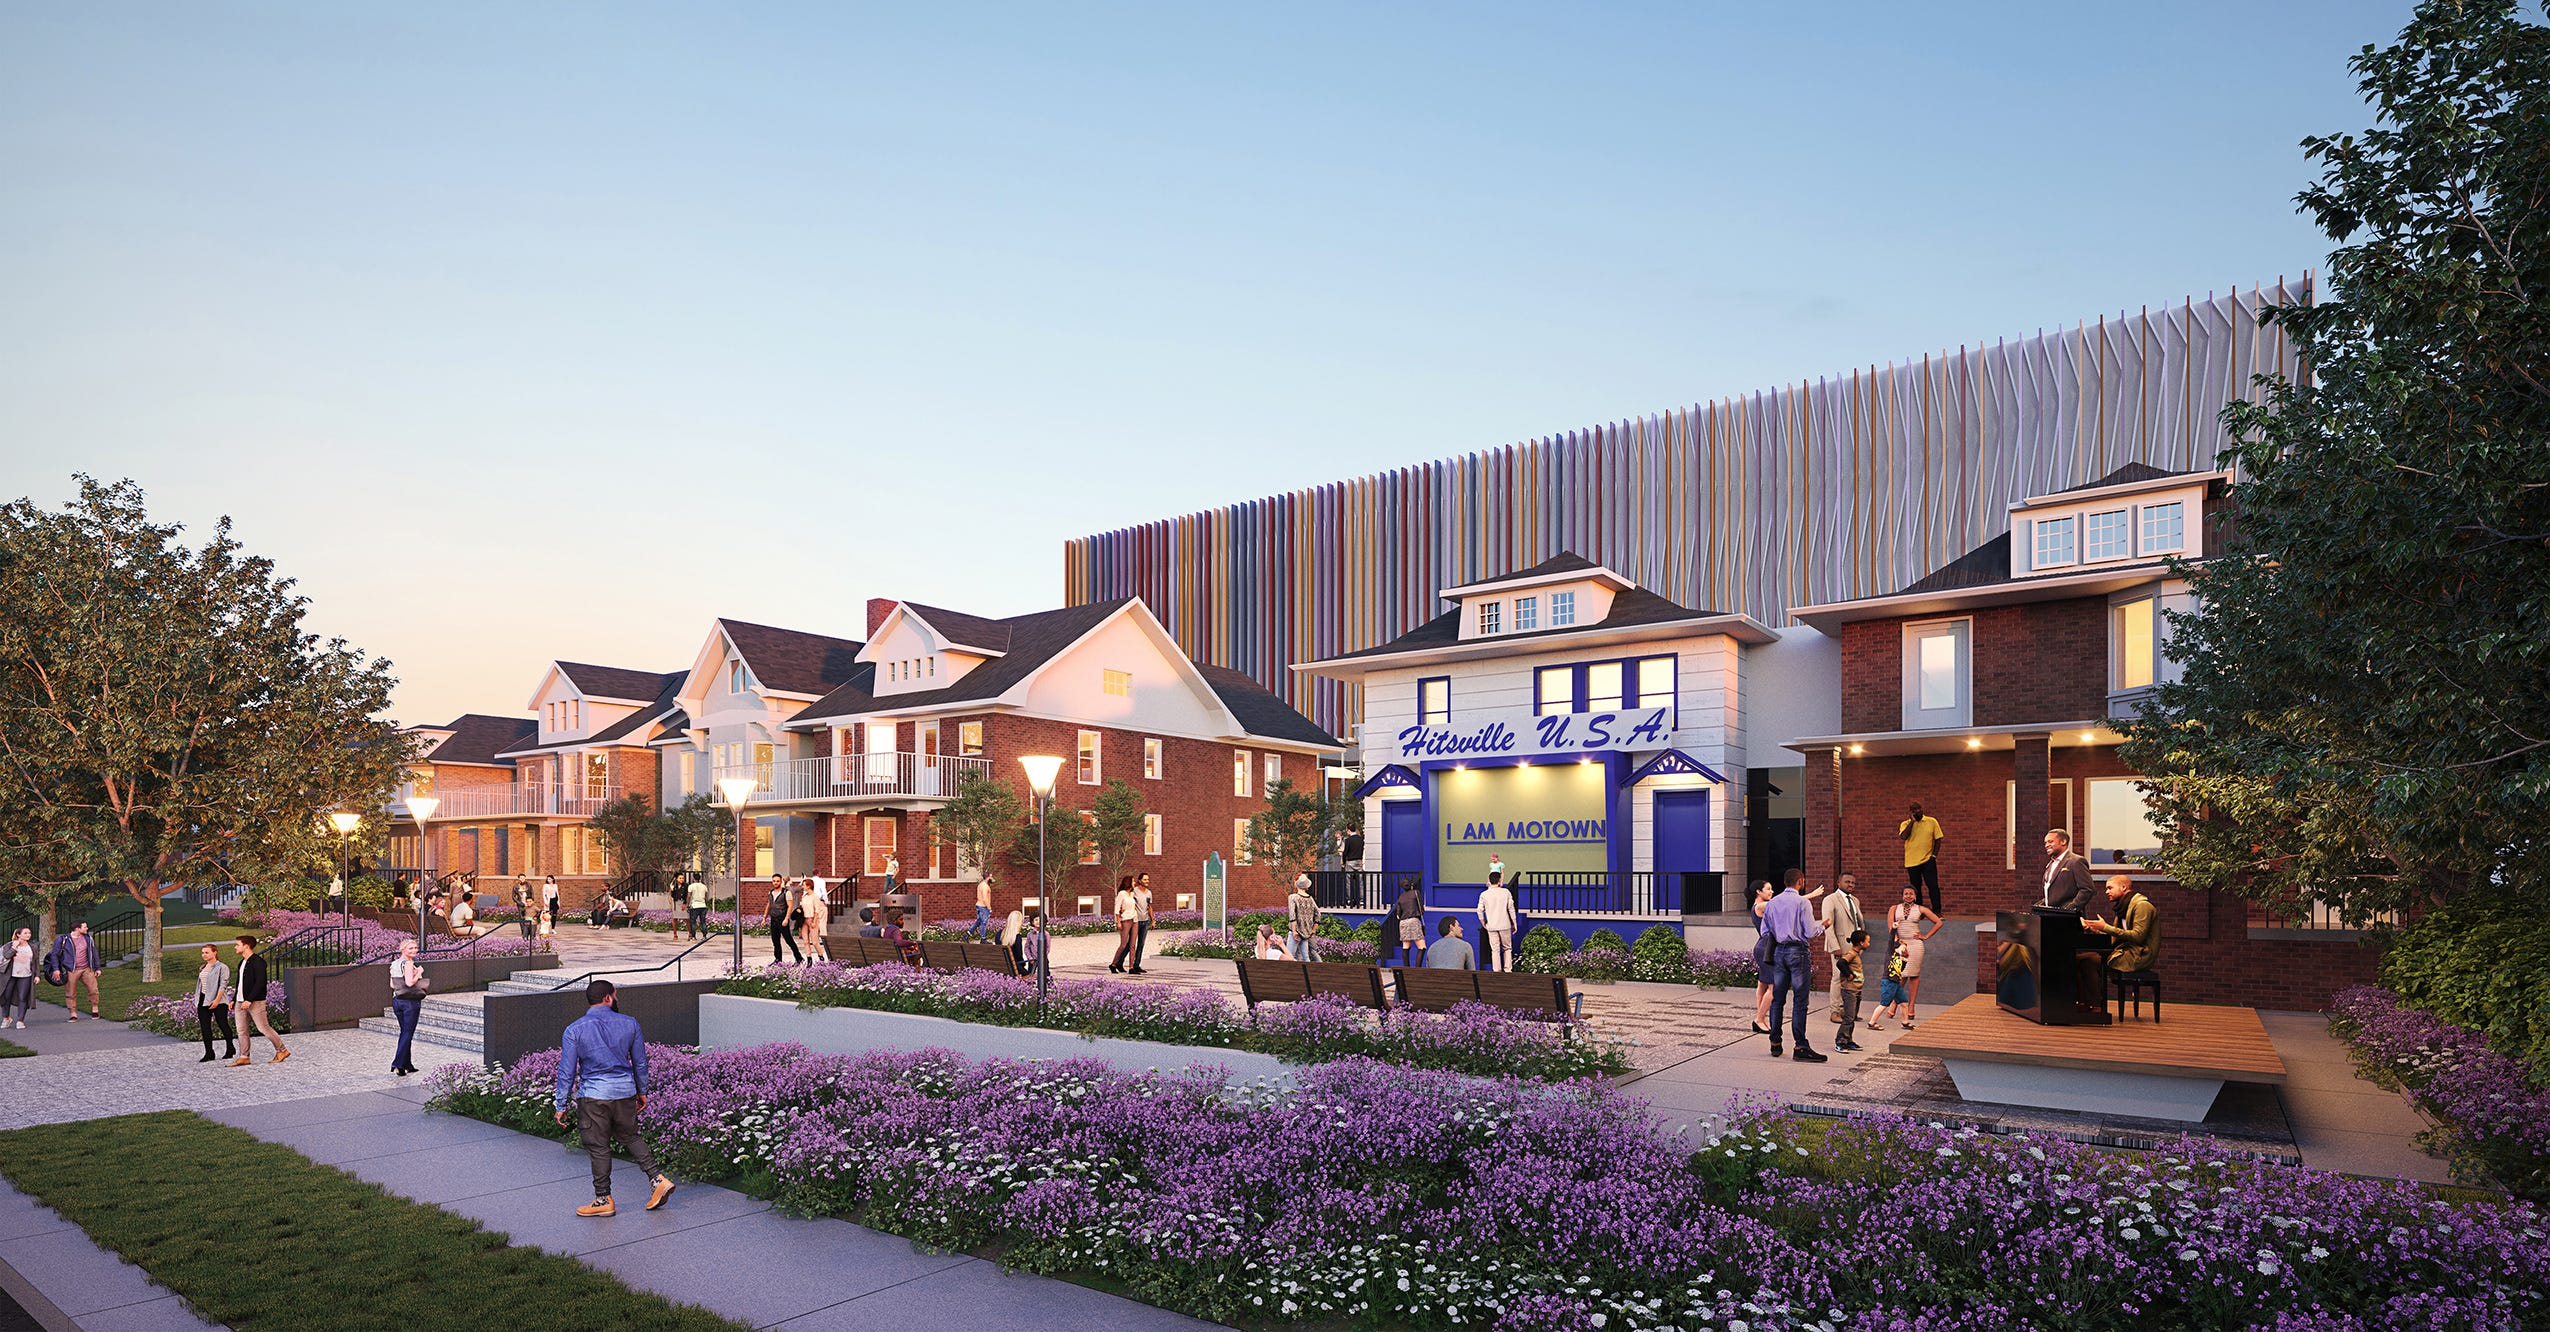 Hitsville transformed: First look at Motown Museum's new plaza as expansion fund hits $32M